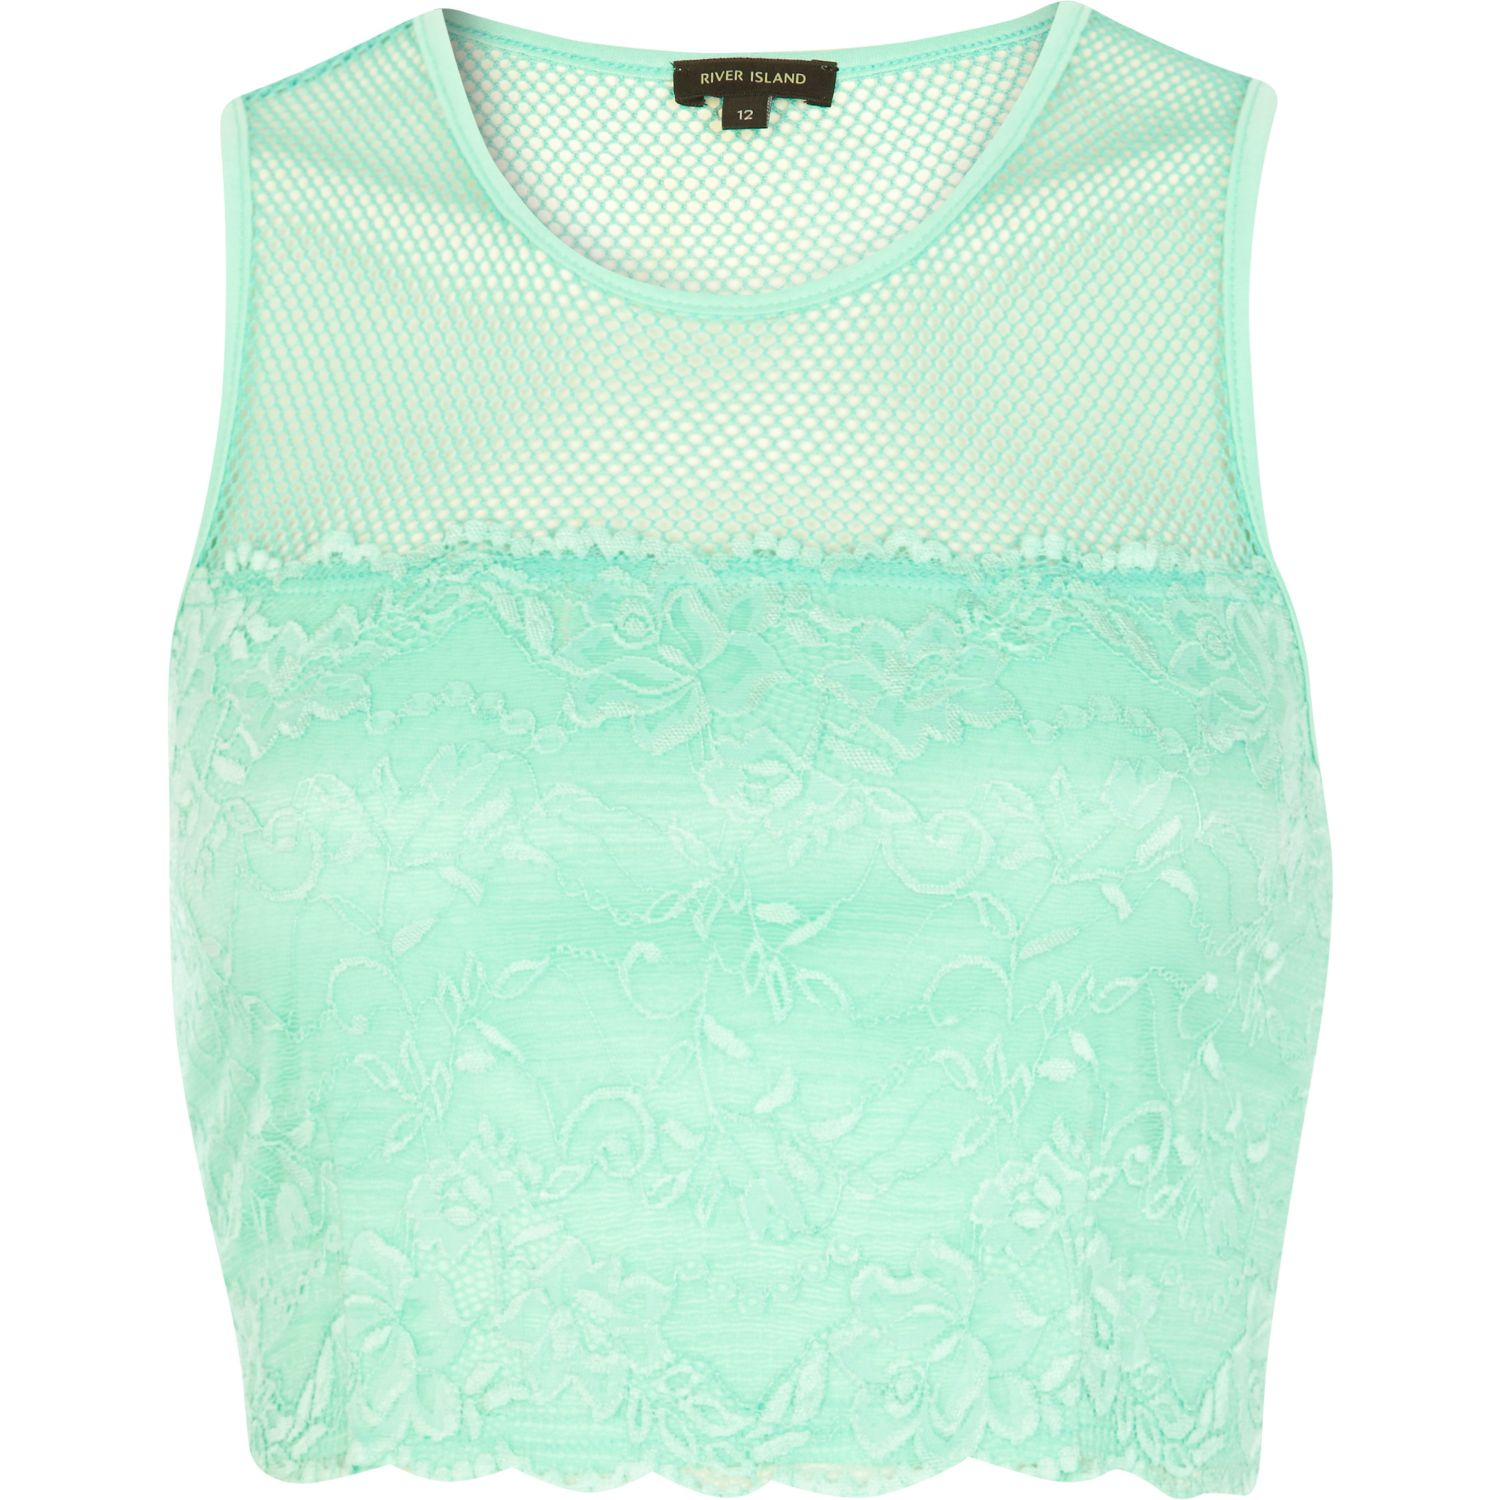 3295ffdff3356 River Island Light Green Mesh and Lace Contrast Crop Top in Green - Lyst